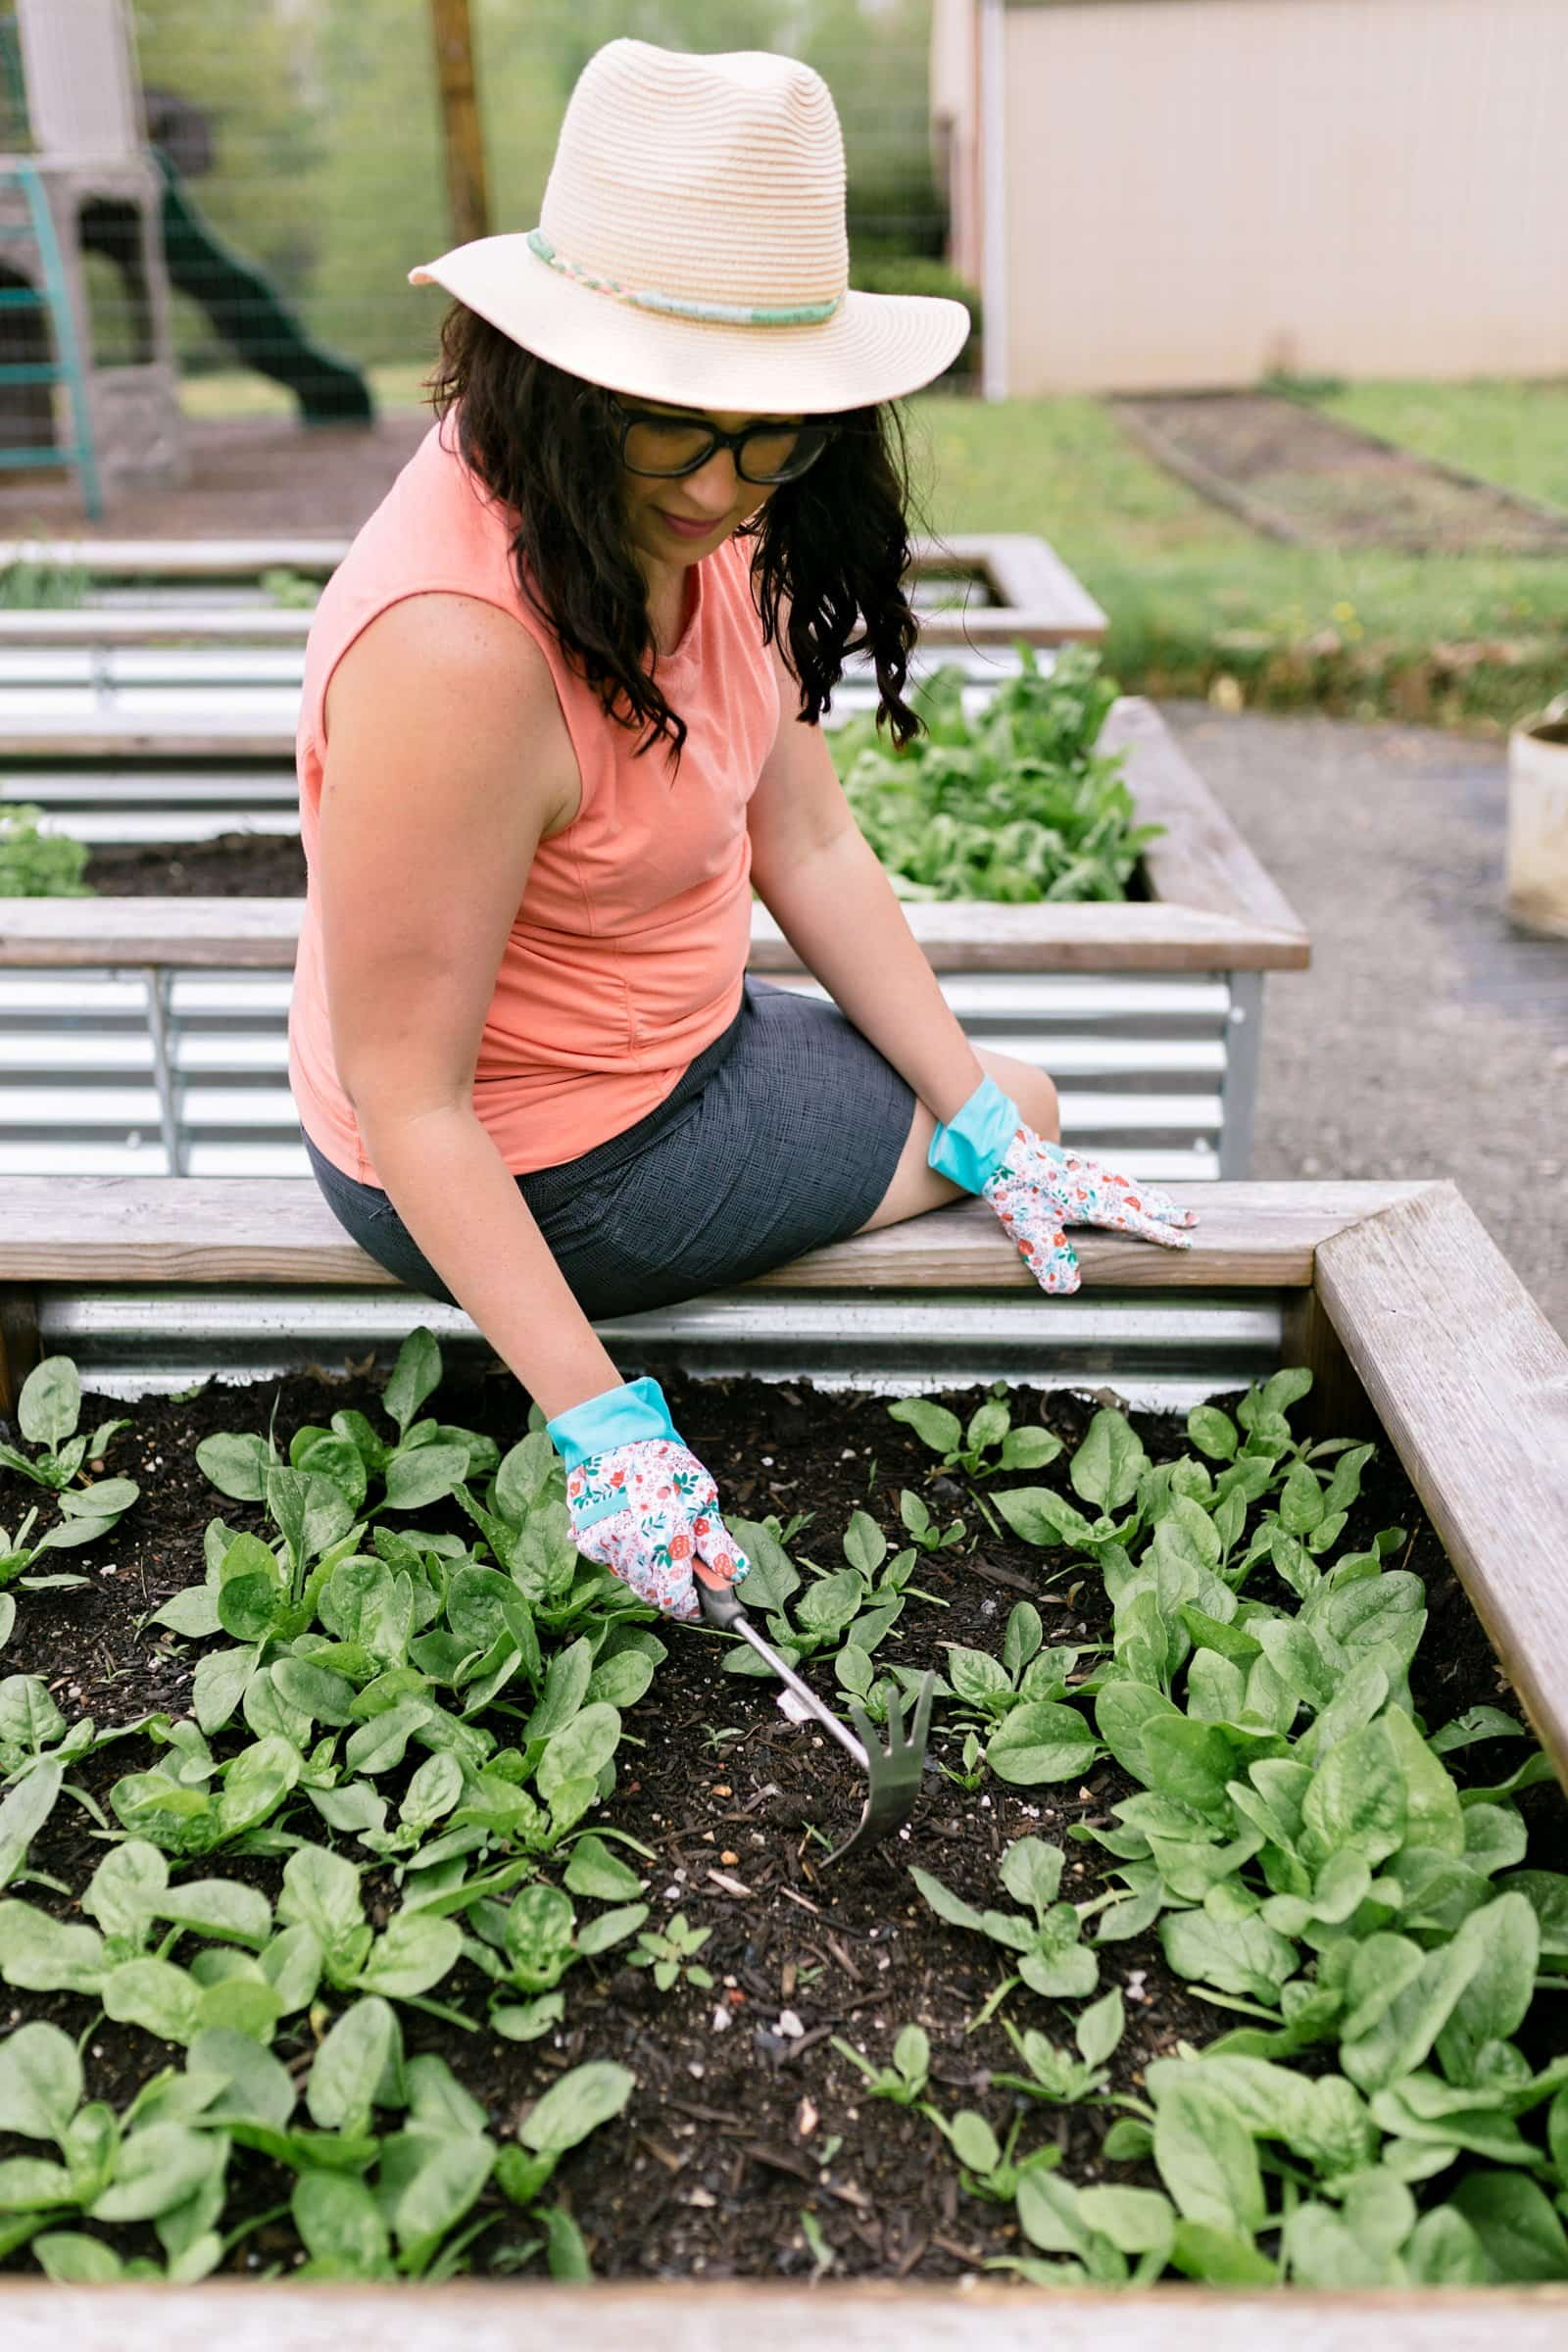 Woman in a coral shirt sitting on the edge of a raised garden bed full of greens, pulling weeds. Greens are a great starting point for beginner vegetable gardeners.